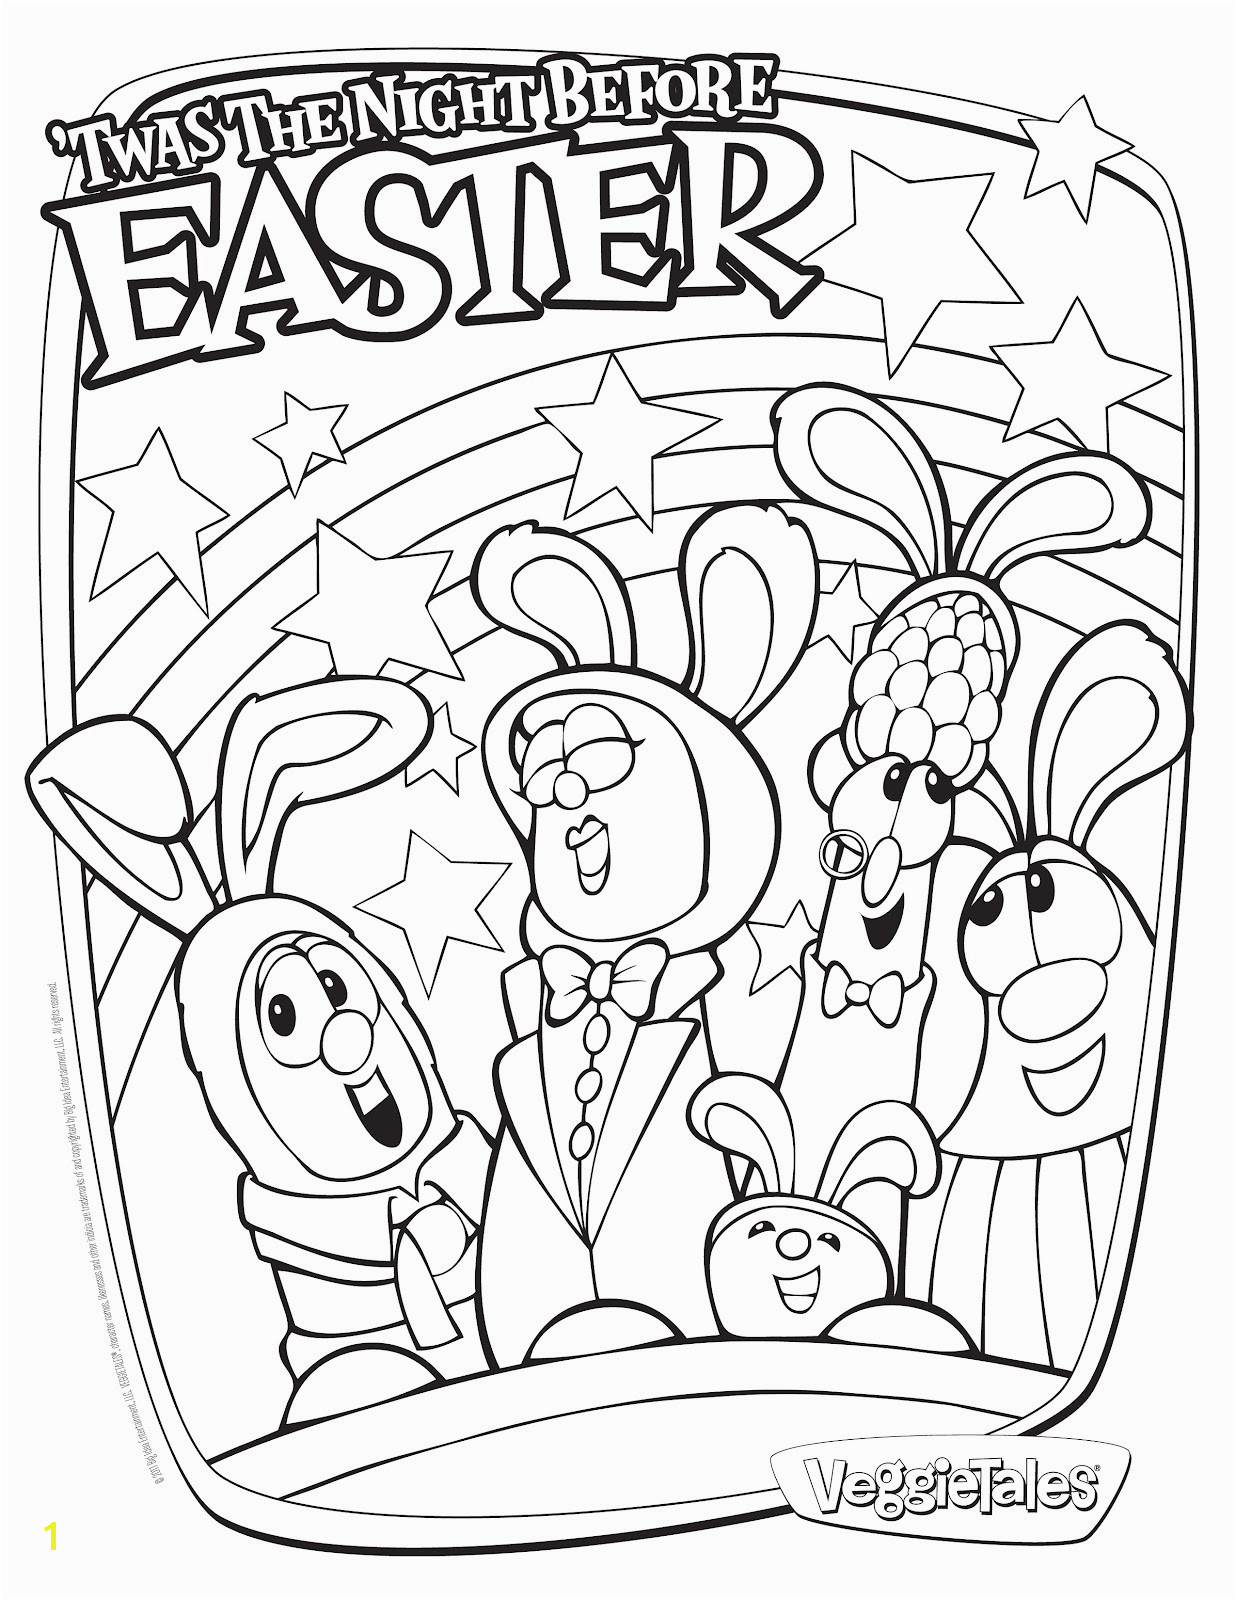 Free Printable Christian Coloring Pages Best s Cool Coloring Page Unique Witch Coloring Pages New